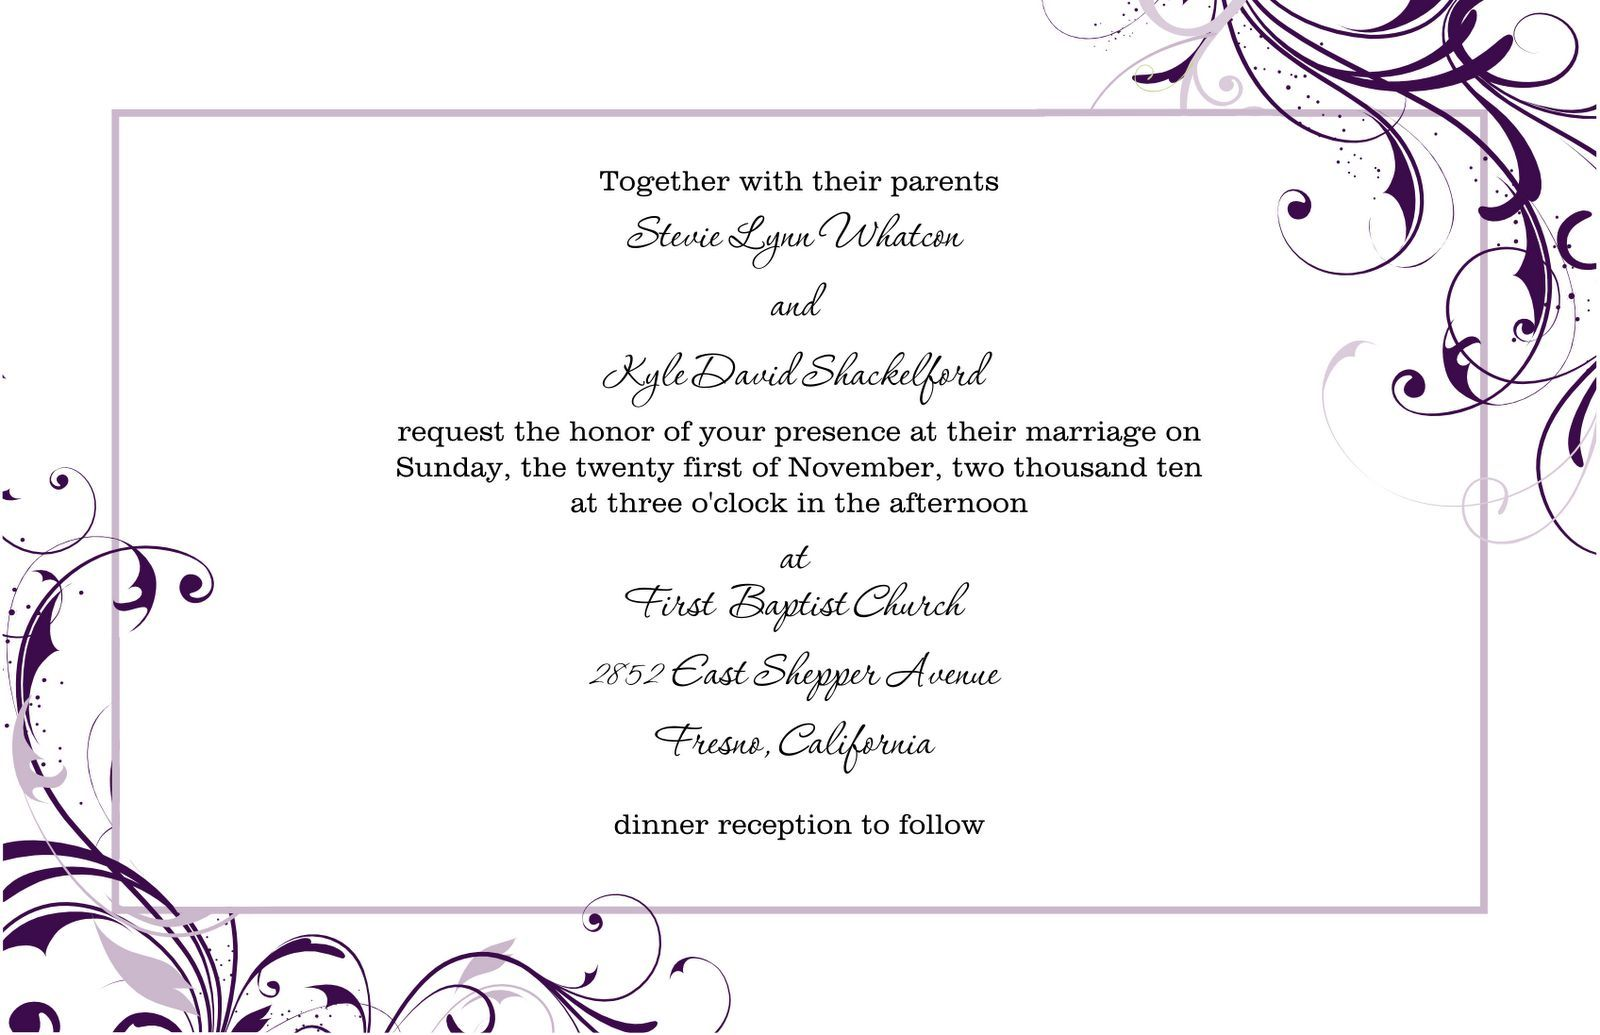 free microsoft word wedding invitation templates  Free wedding